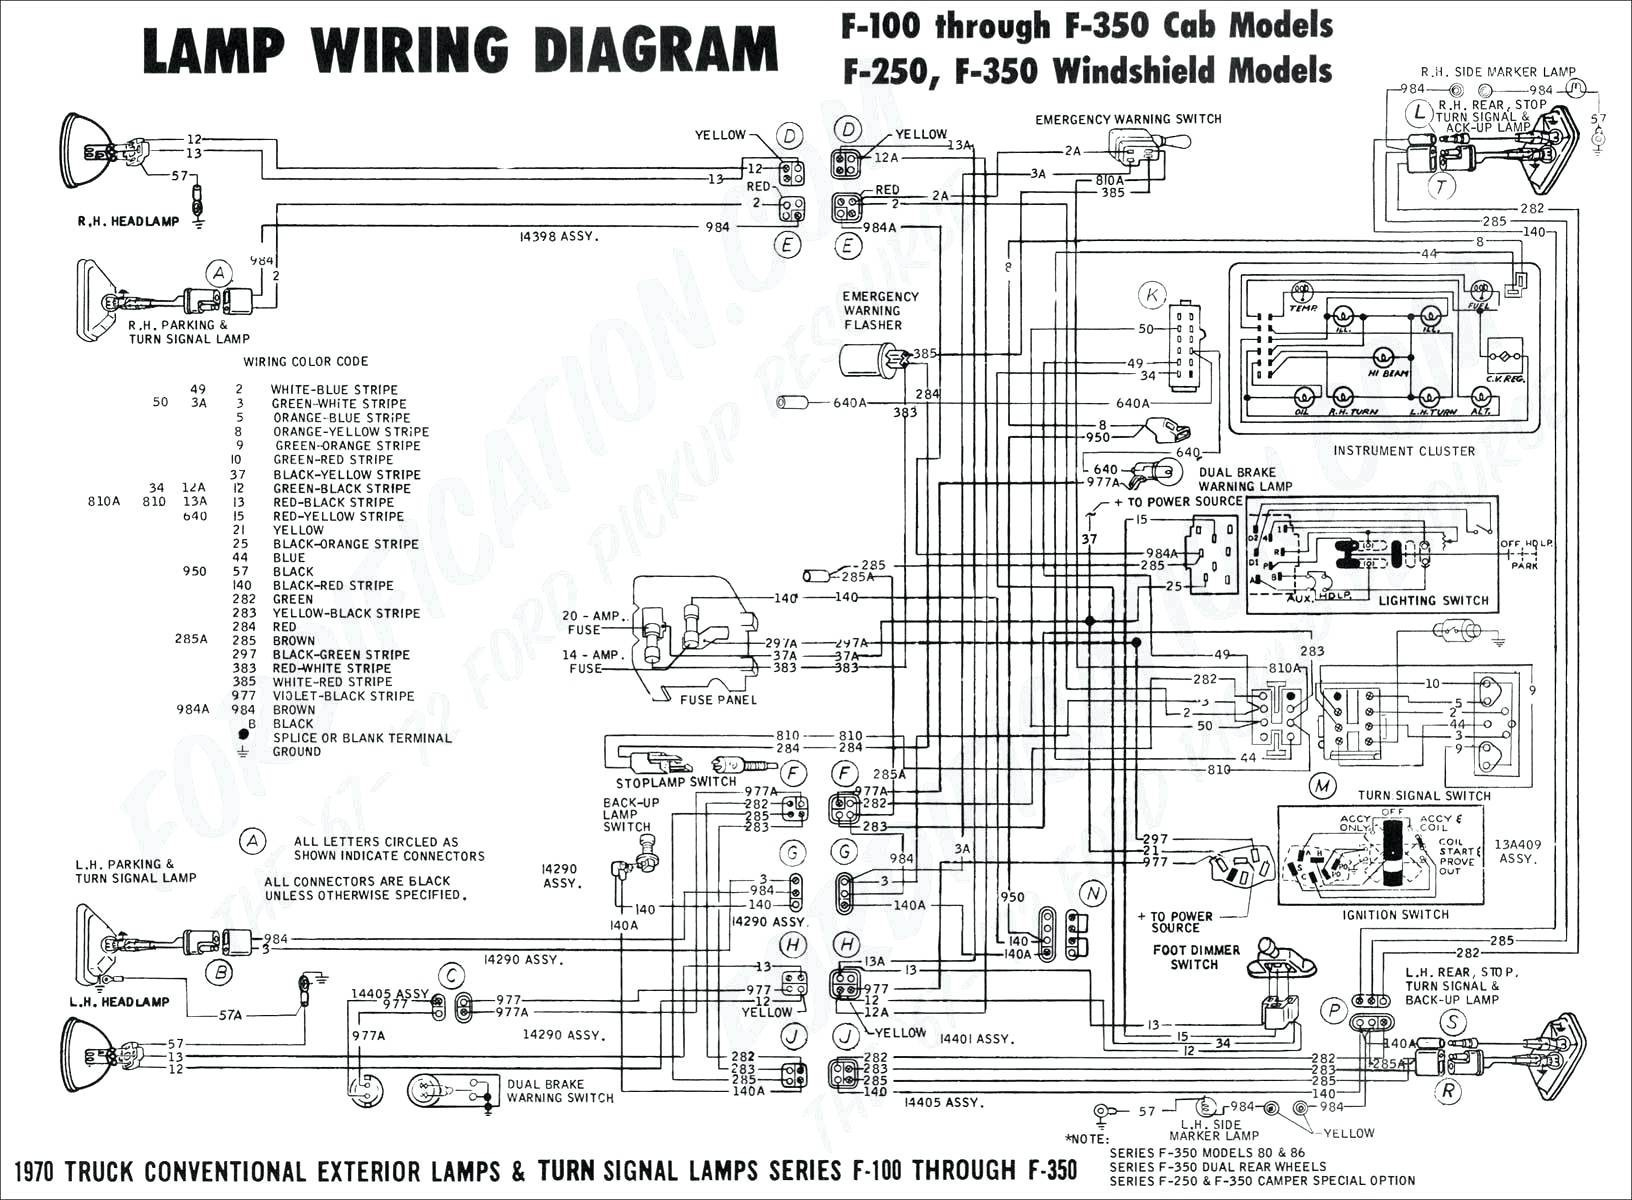 neutral saftey switch diagram wiring harness painless search  neutral saftey switch diagram wiring harness painless #4